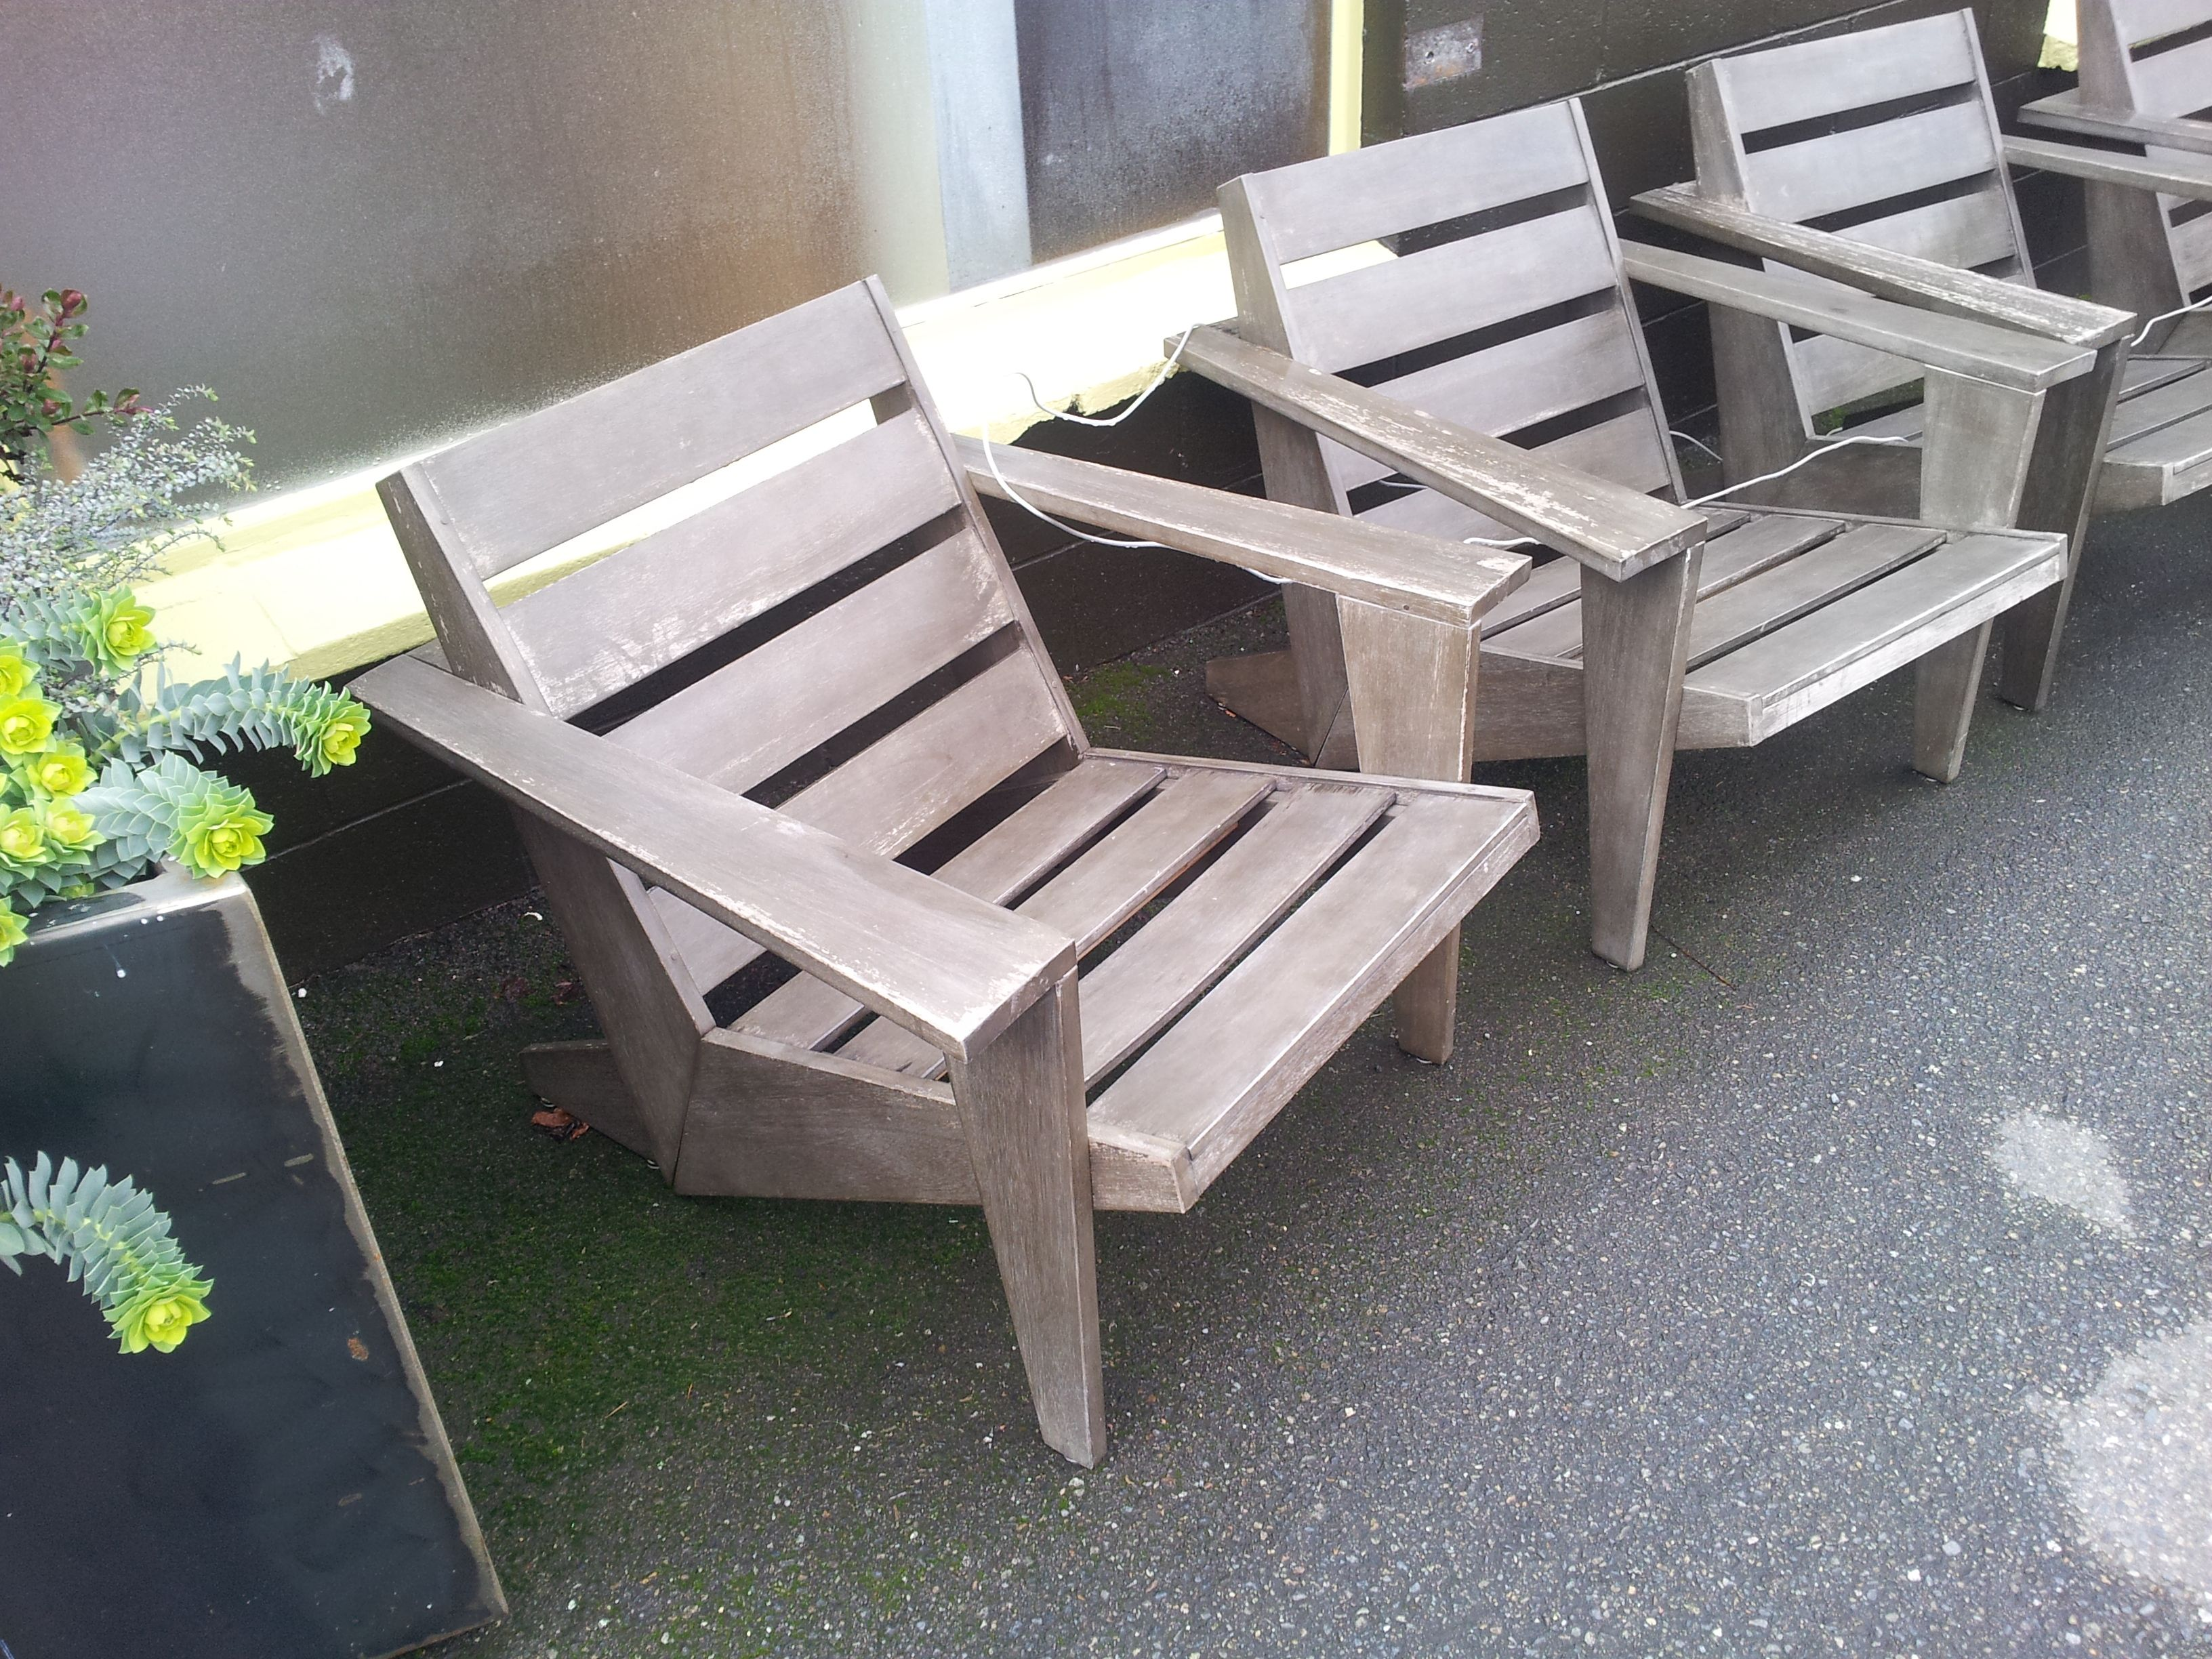 cool modern adirondack chairs from outside a coffe shop in